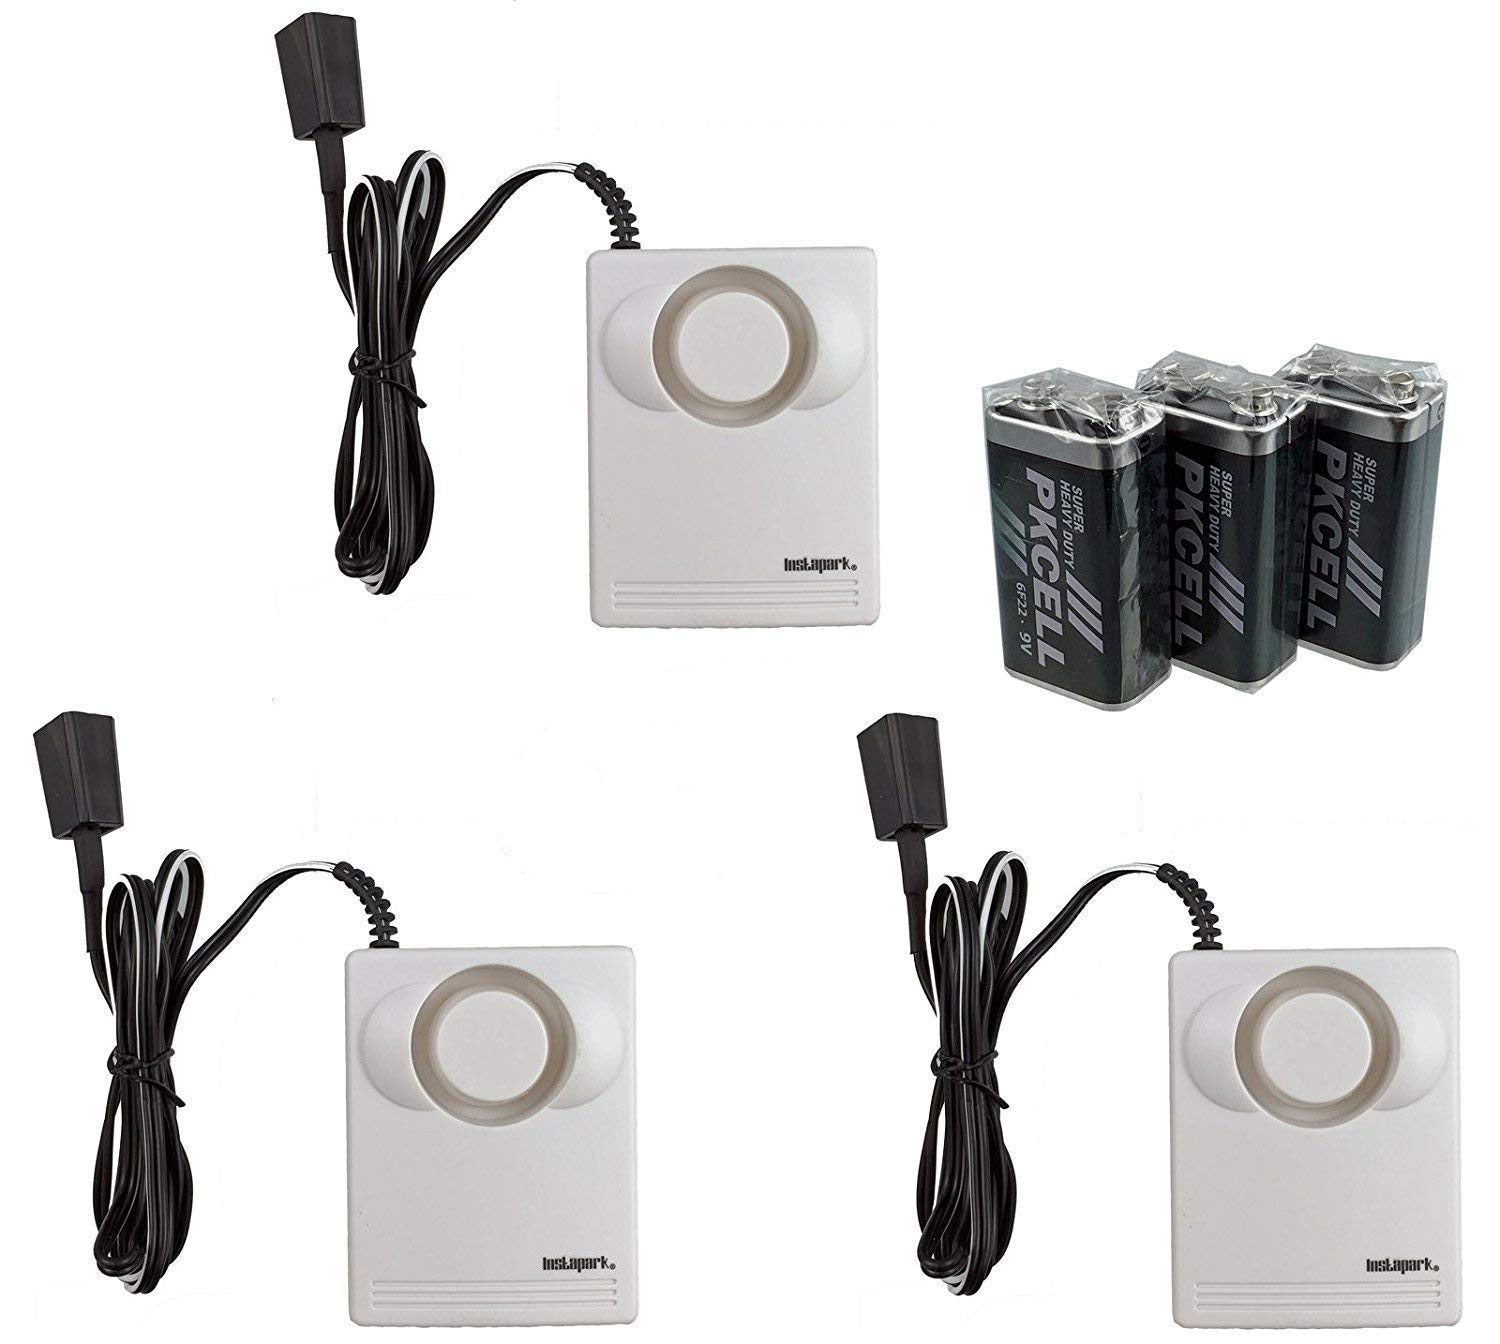 Instapark IN07A Battery-Powered Water Leakage Detection Alarm and Sensor, 130 dB, 3 Pack Batteries Included by Instapark